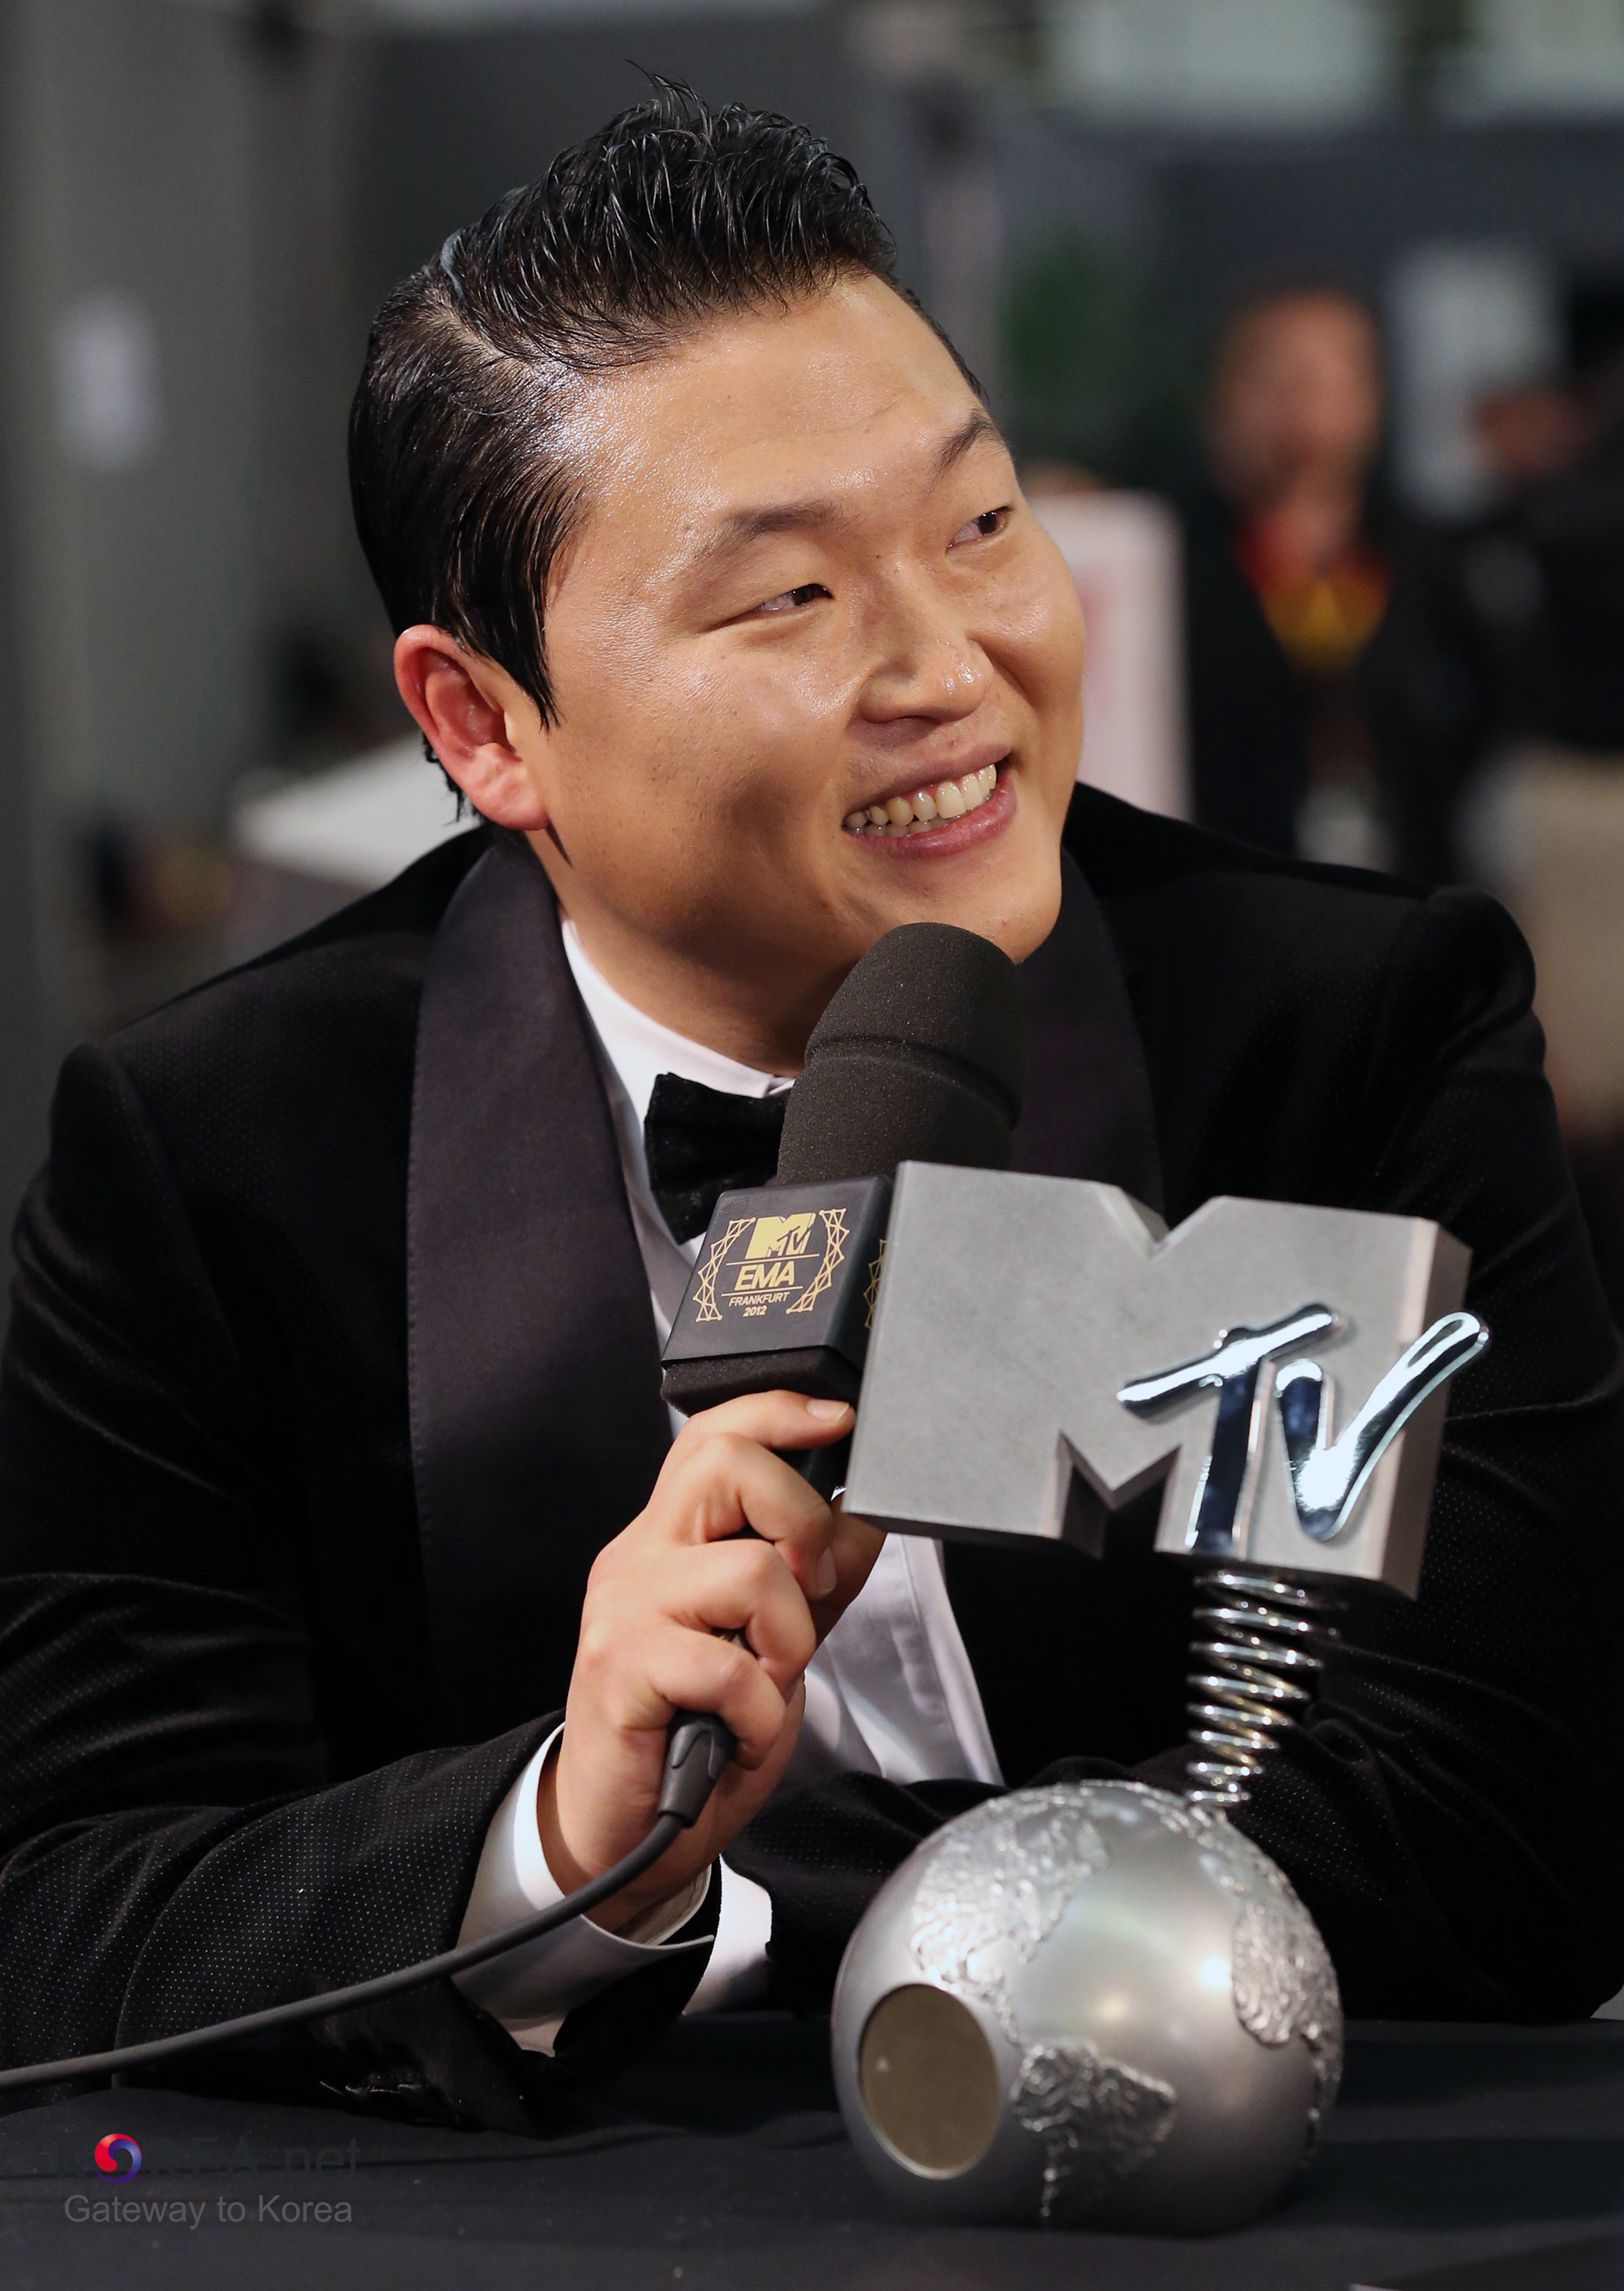 The 40-year old son of father Park Won-ho and mother Kim Young-hee Psy in 2018 photo. Psy earned a  million dollar salary - leaving the net worth at 45 million in 2018